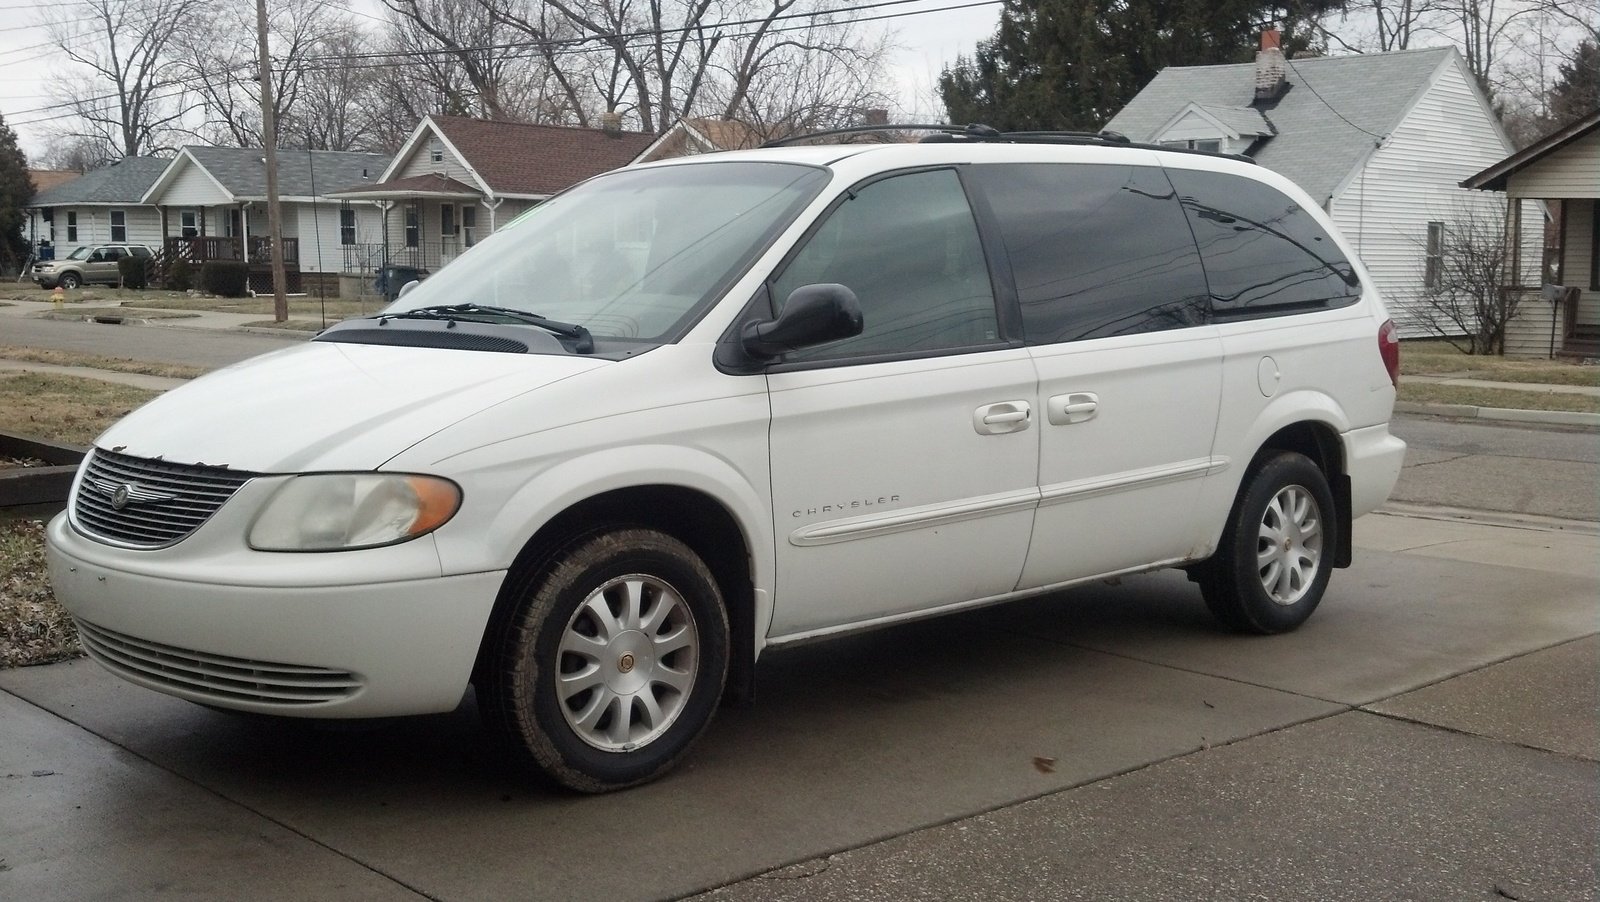 used 2001 chrysler town and country minivan pricing 2016 car release. Cars Review. Best American Auto & Cars Review